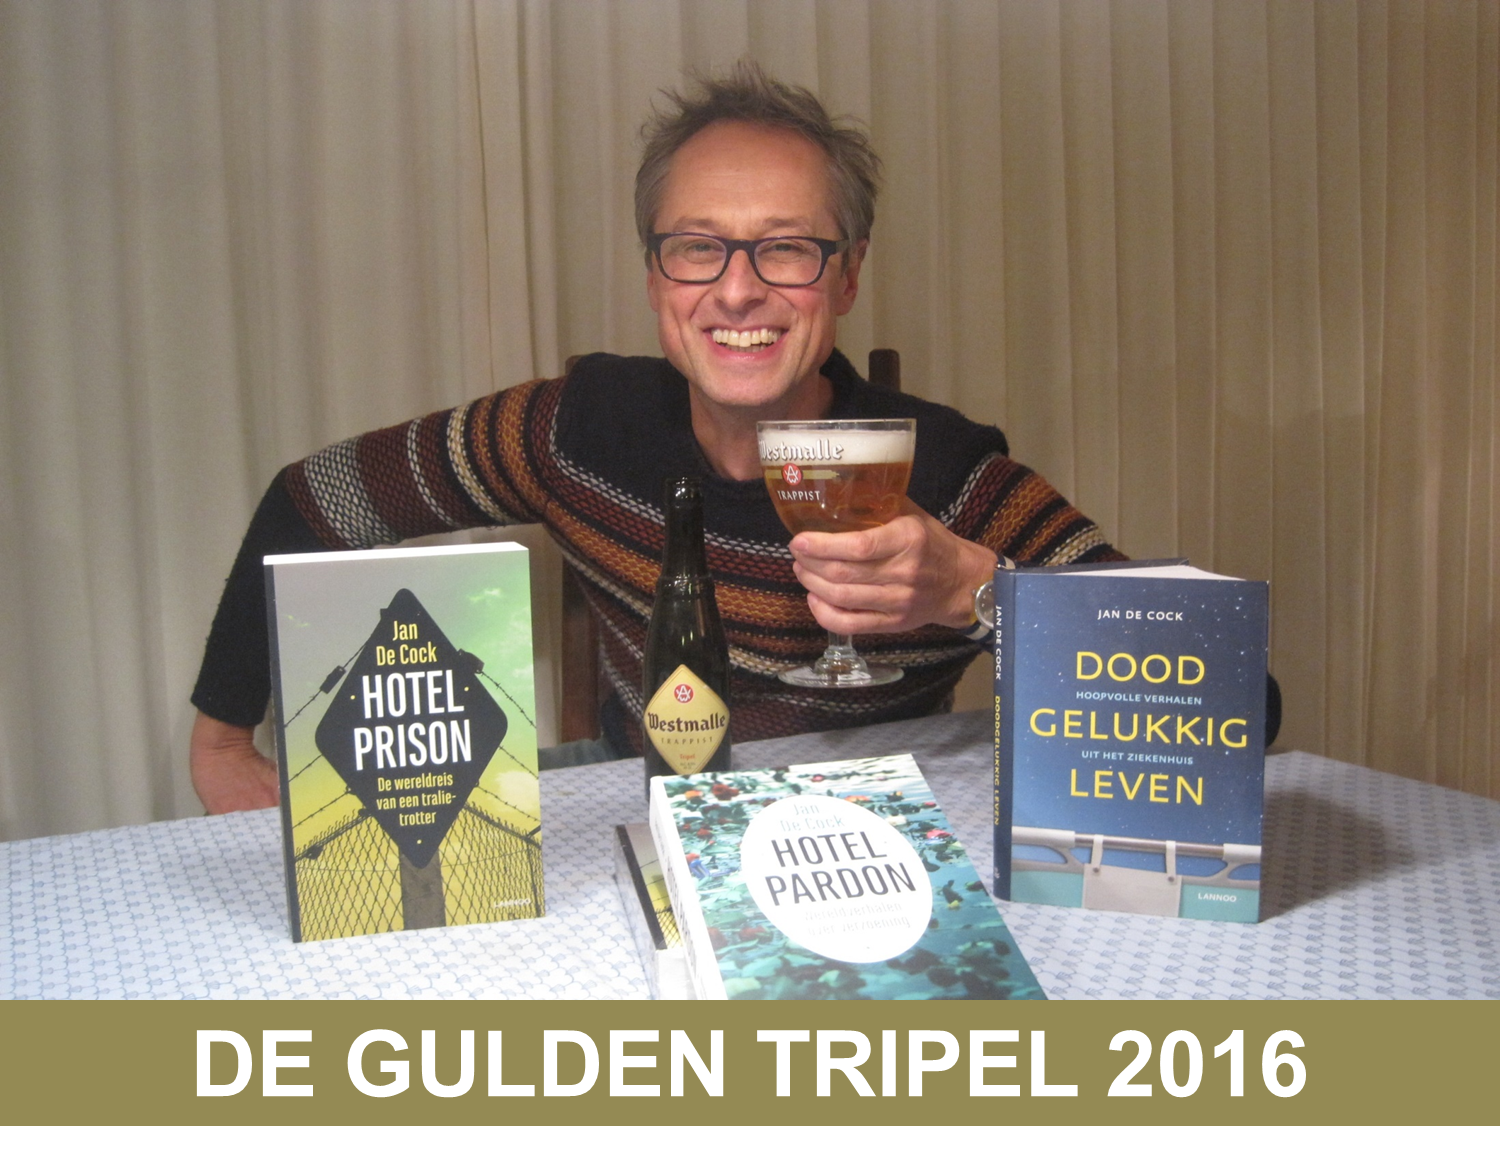 De Gulden Tripel 2016